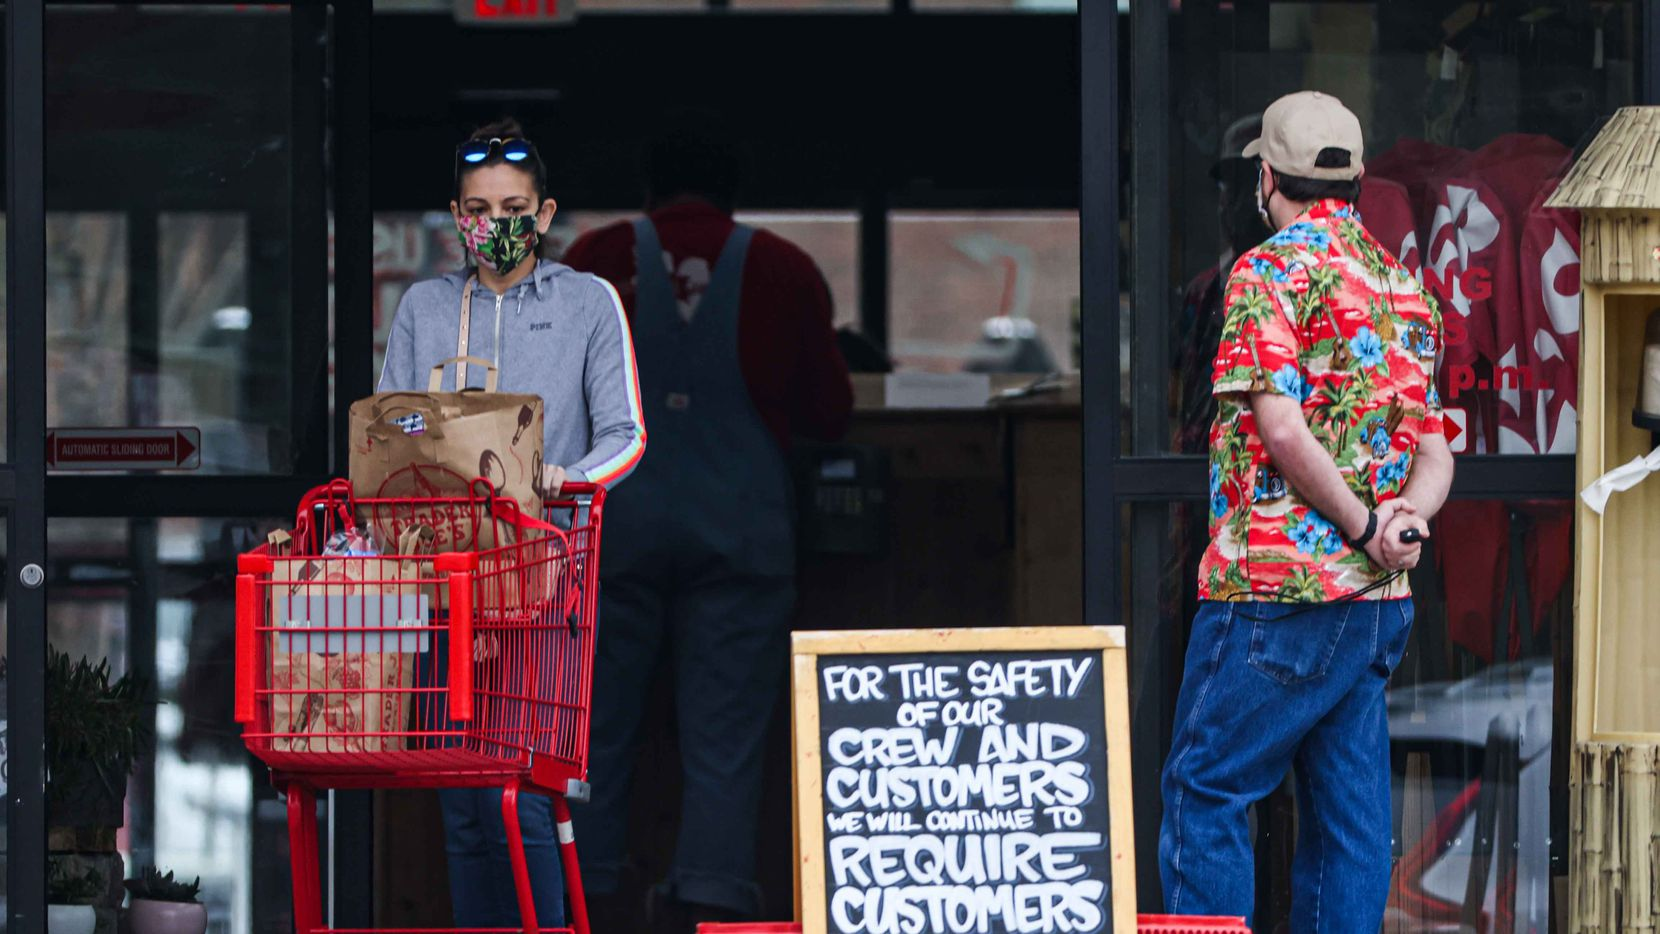 Shoppers at Trader Joe's on Greenville Ave wore masks even after COVID-19 mandates were lifted Wednesday in Texas.